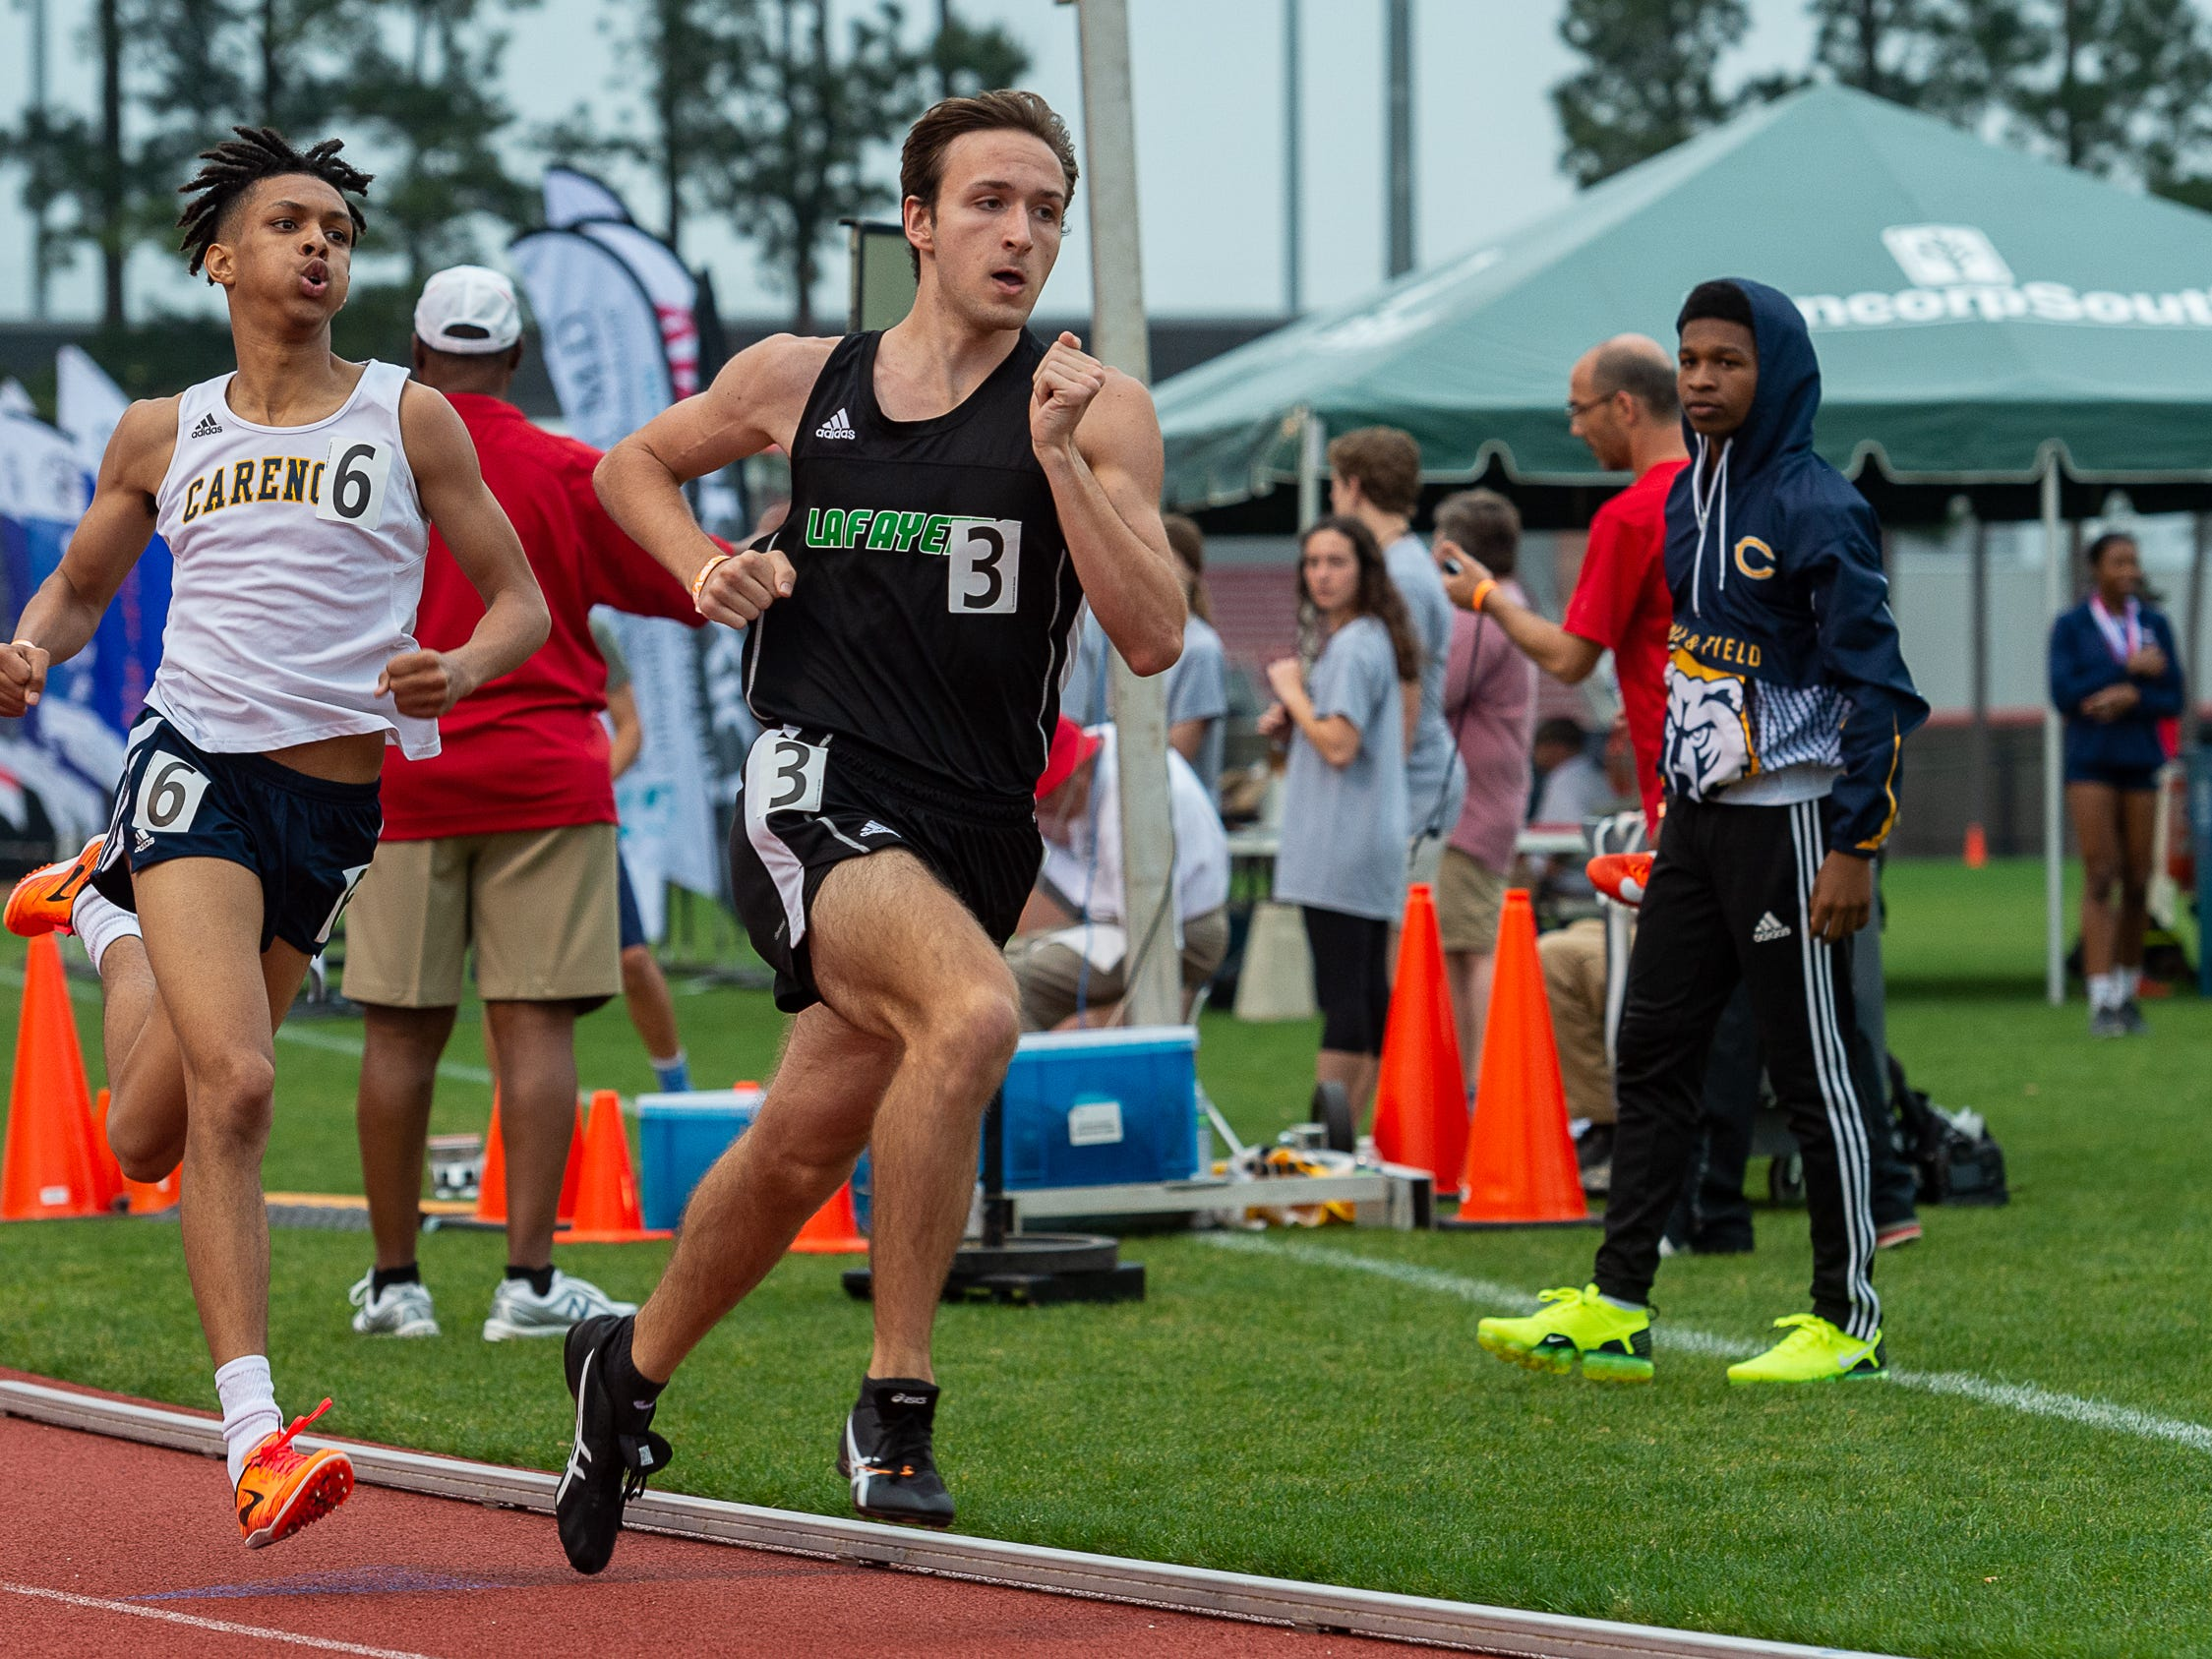 Riley Plunkett leads and goes on to win the 800m run at The 2019 Beaver Club Relays. Friday, April 5, 2019.